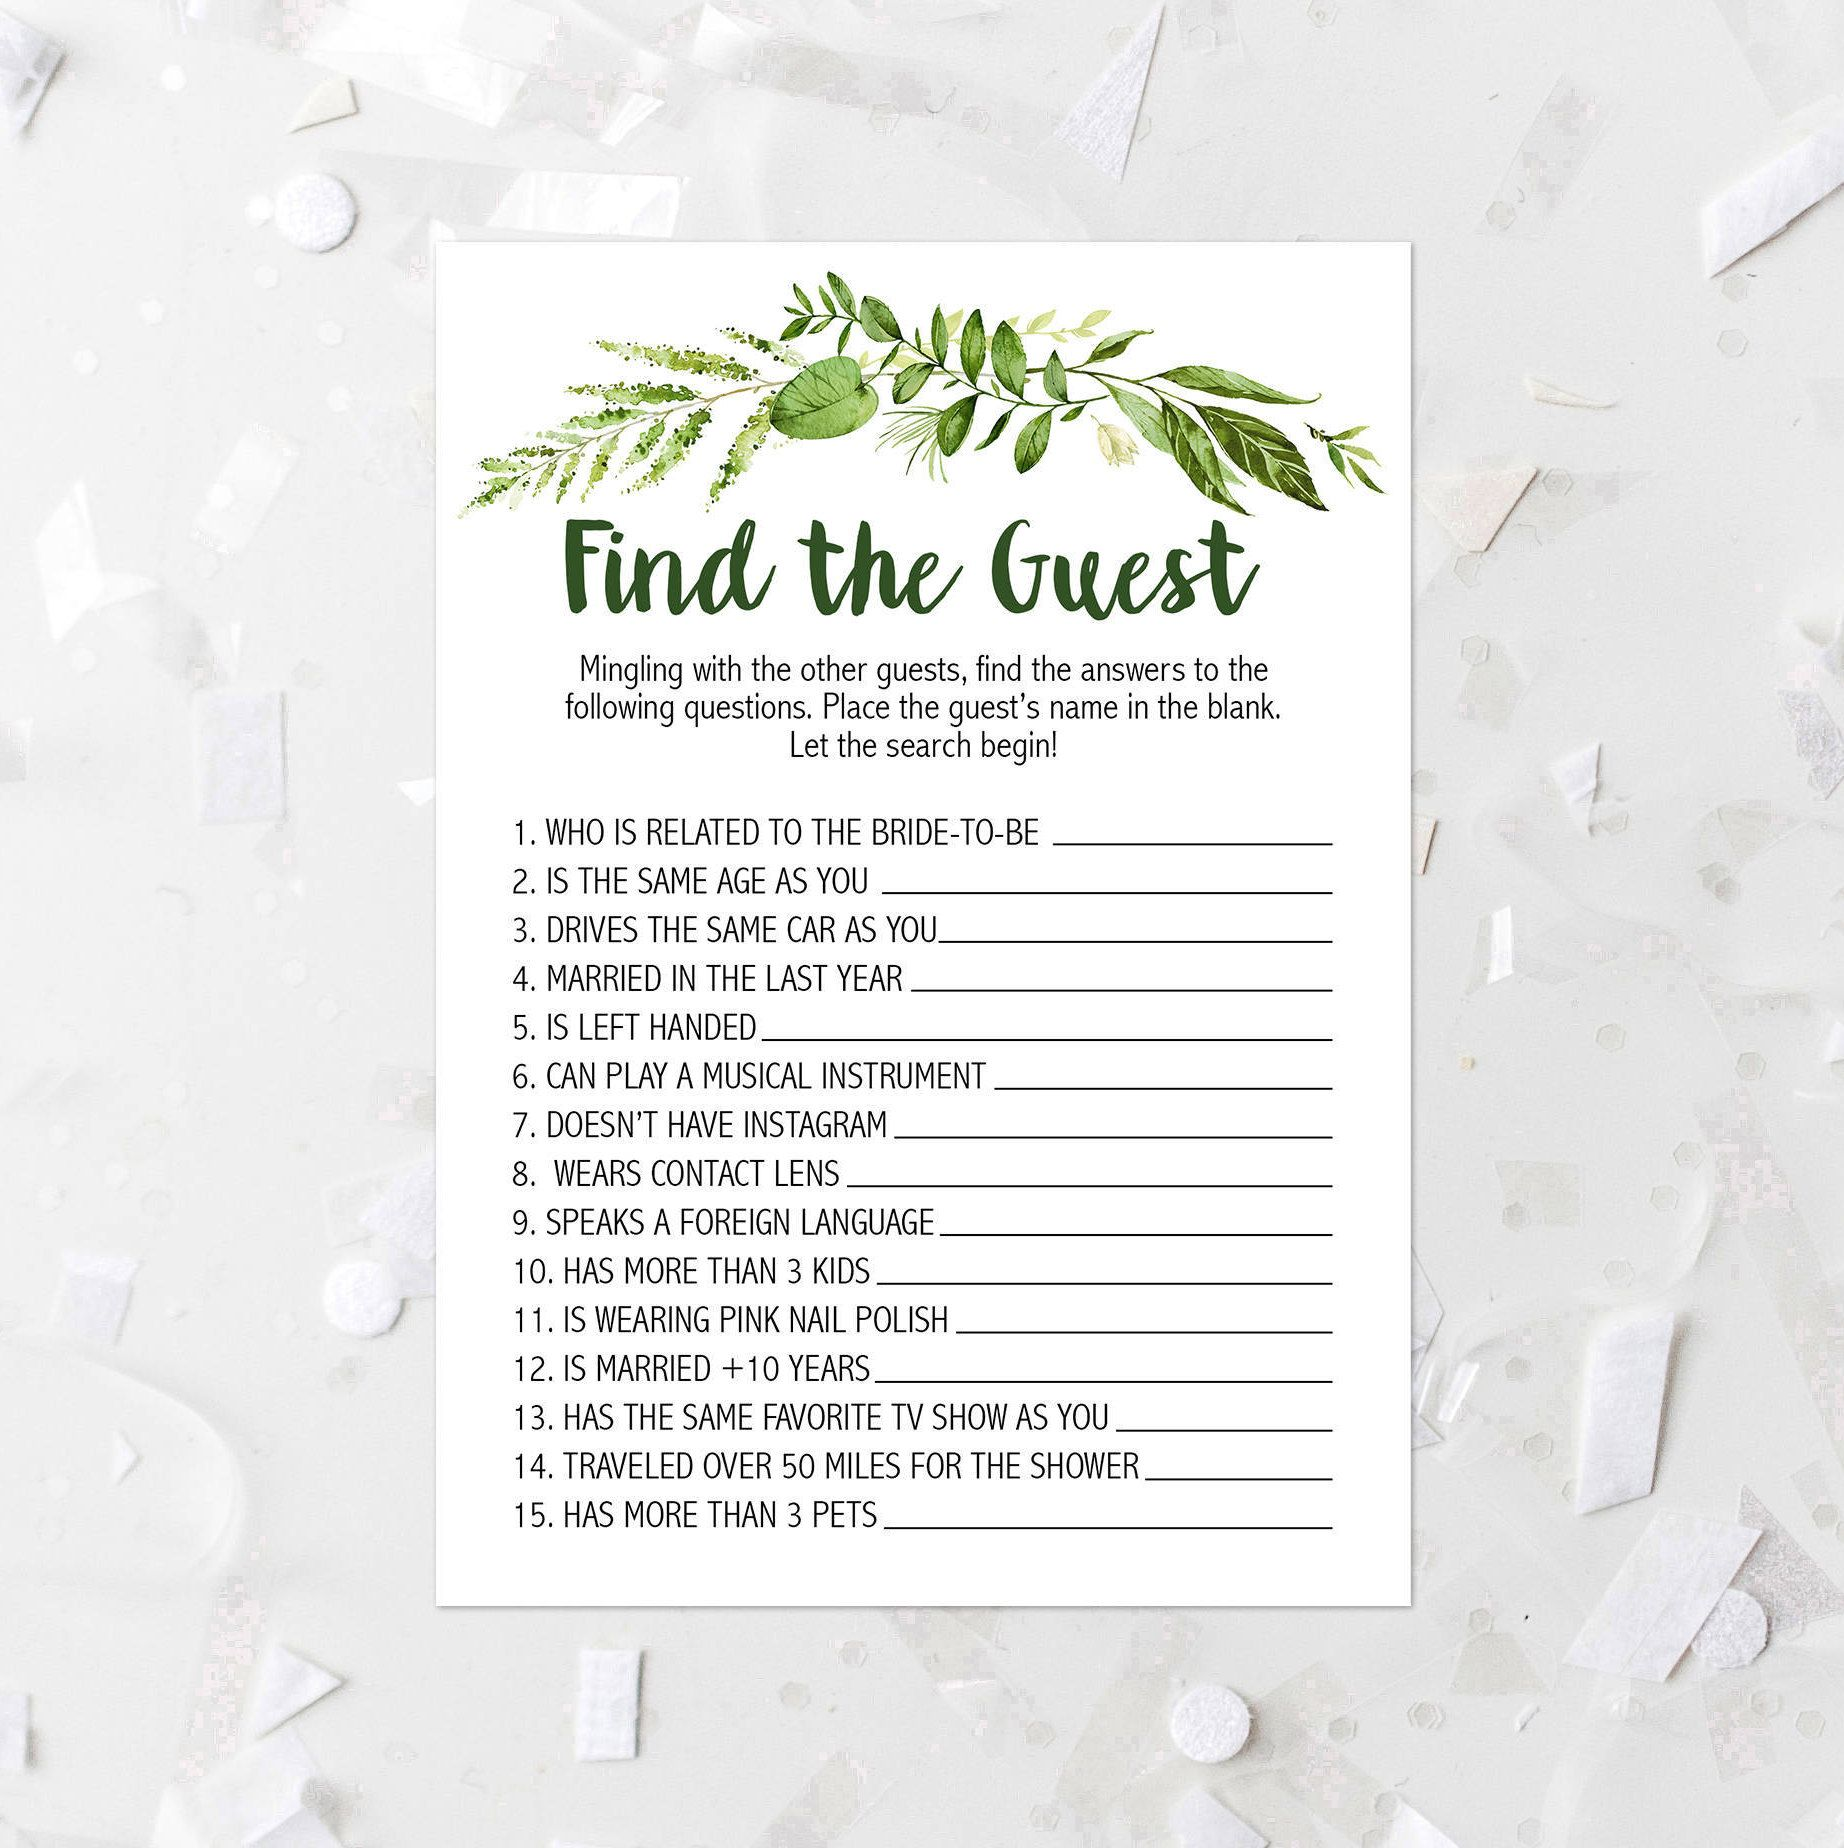 Wedding Games For Guests: Spring Foliage Find The Guest Shower Game Printable